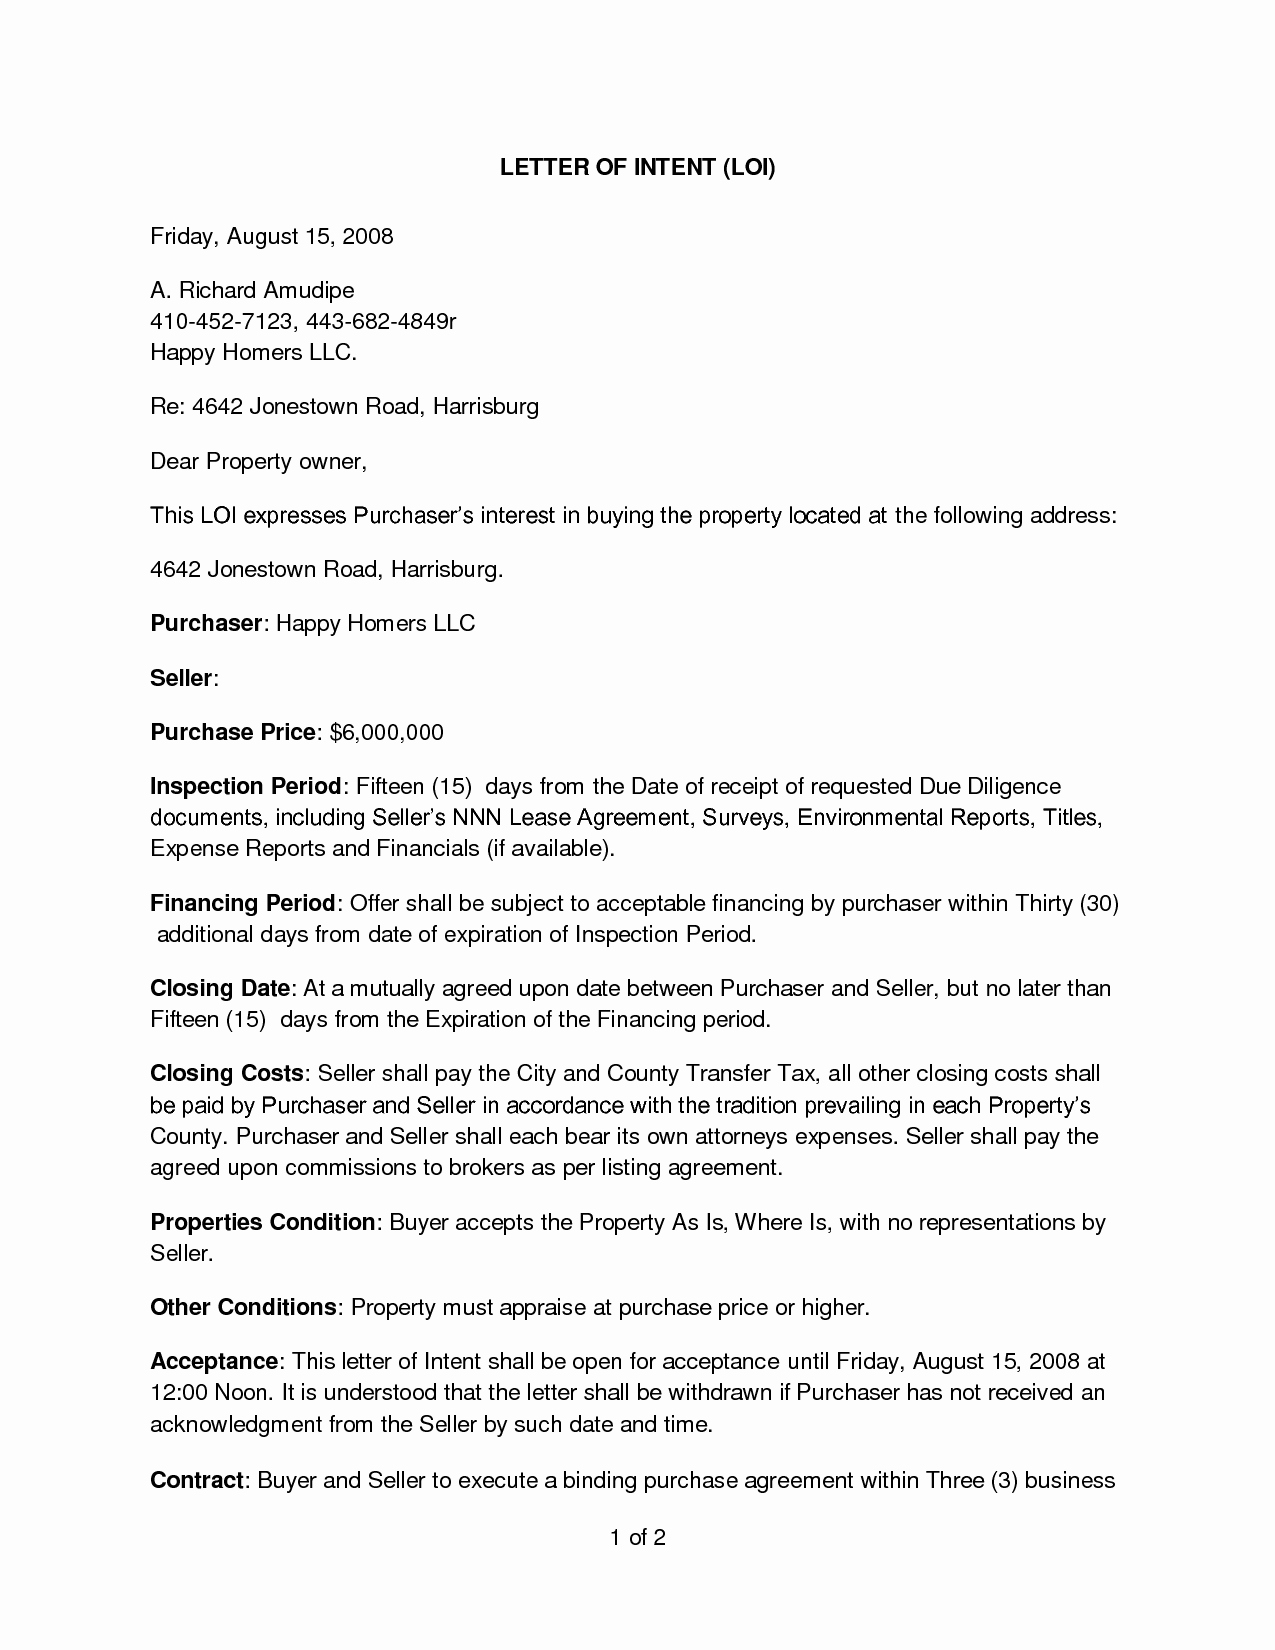 Simple Letter Of Intent to Purchase Property New Sample Letter Intent to Purchase Real Estate Free